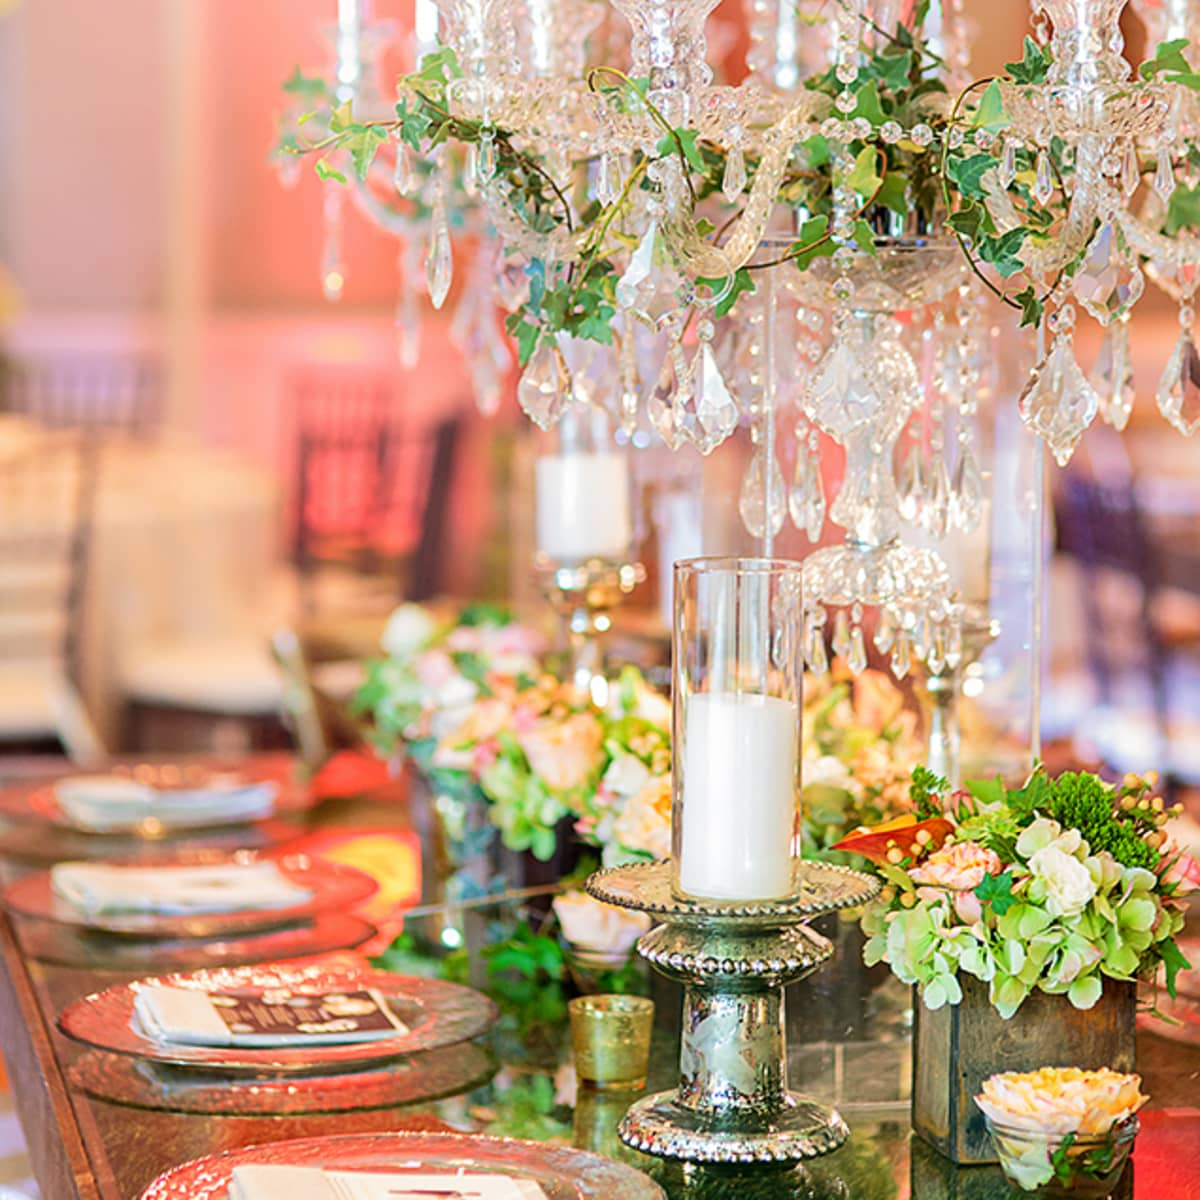 crystal chandeliers and mercury glass candleholders add a sophisticated element to the rustic dcor